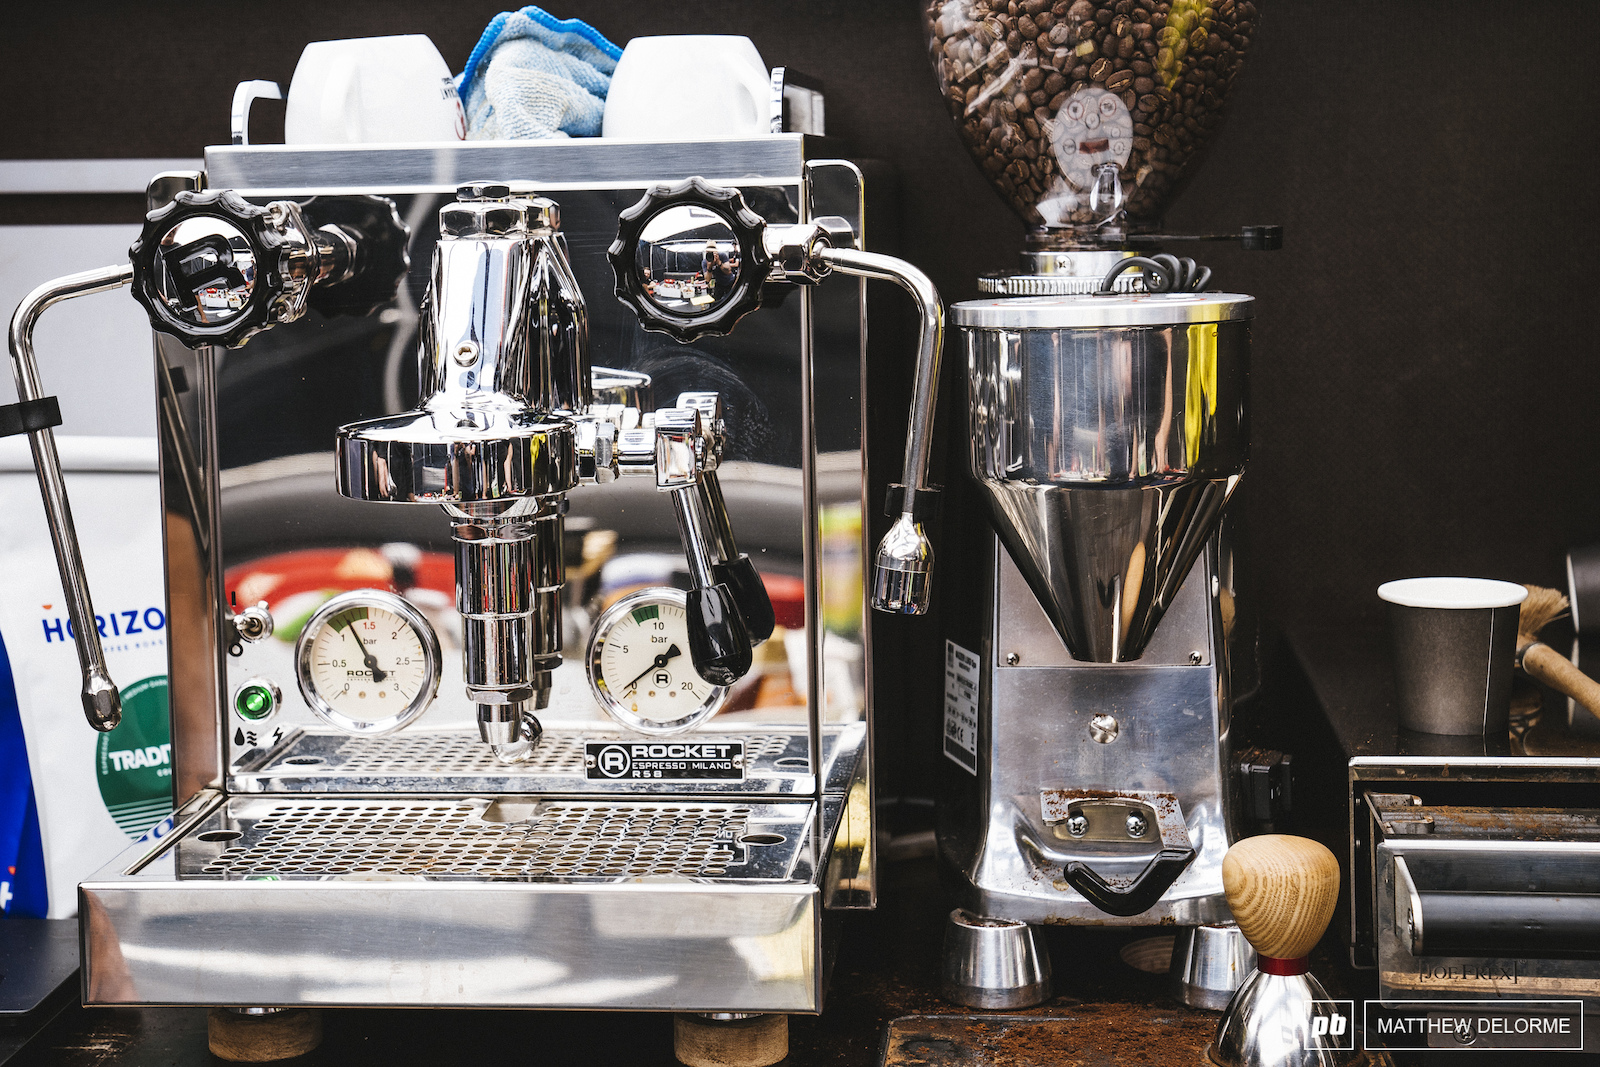 The Amazing set up of Specialized. Rocket Espresso R58.